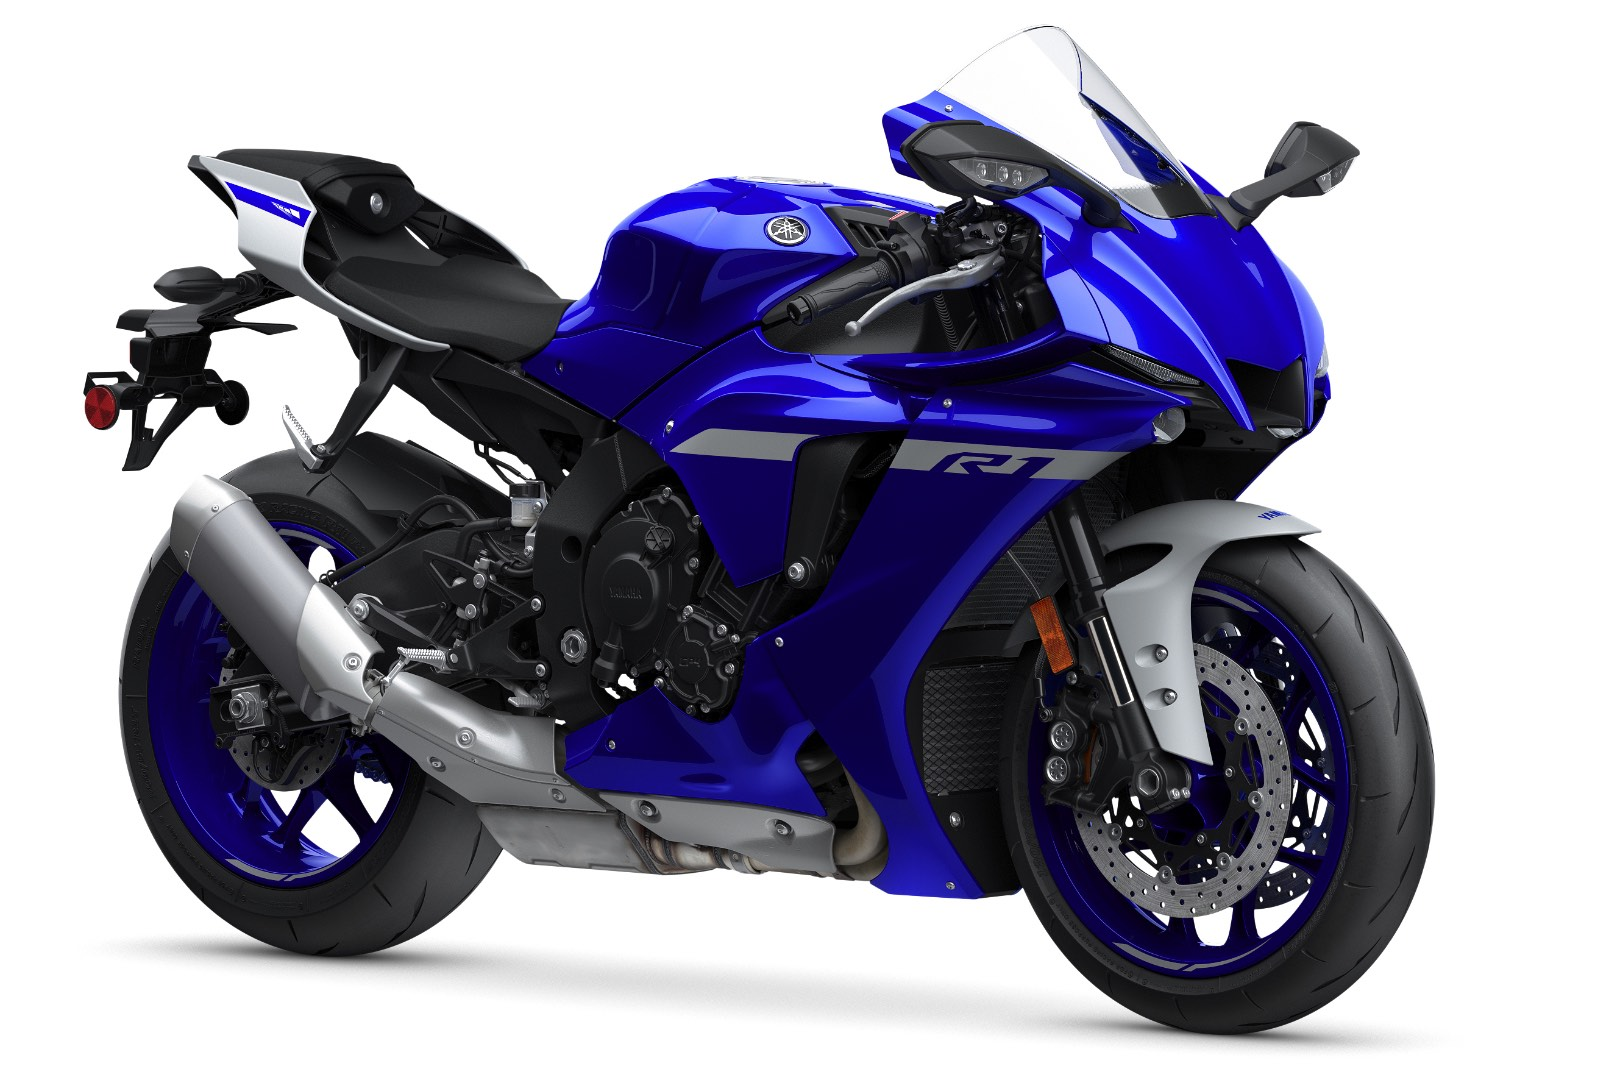 2020 Yamaha Yzf R1 And Yzf R1m First Look 13 Fast Facts